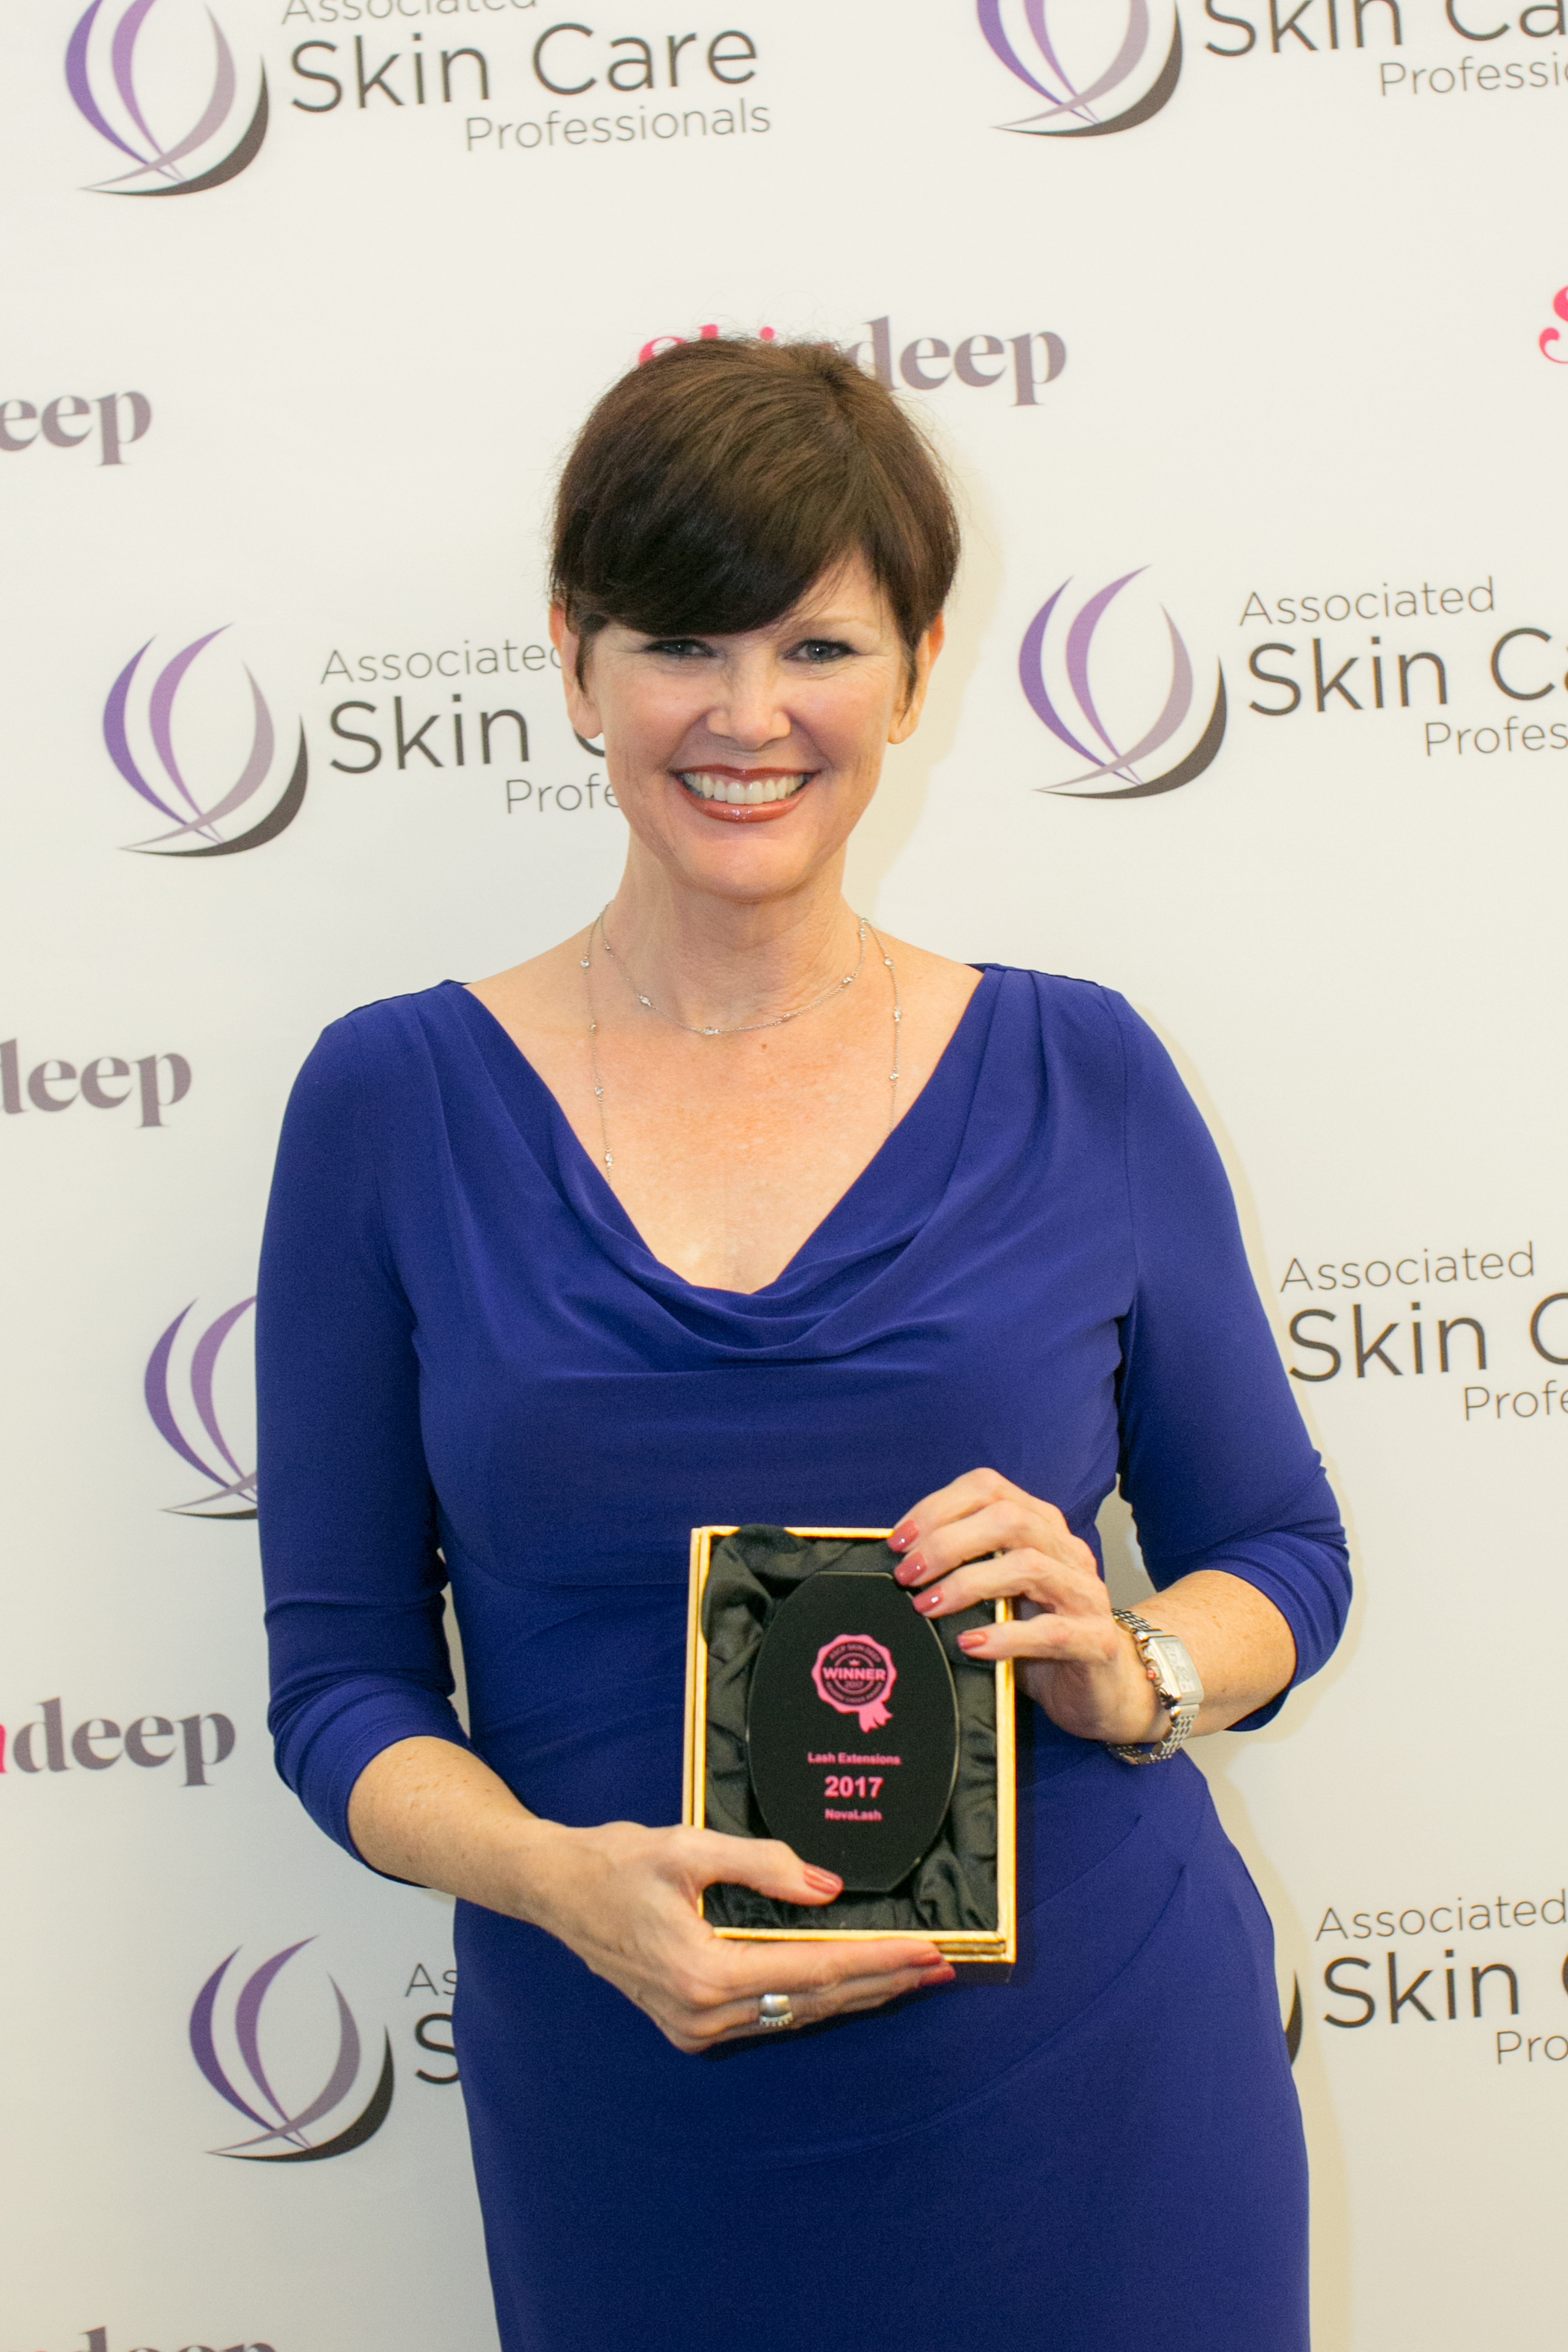 Melanie Kopeikin, president of Lash and Brow Academy, Encino, Calif. and Novalash Californian Distributor, accepts ASCP award. Photo courtesy of NovaLash